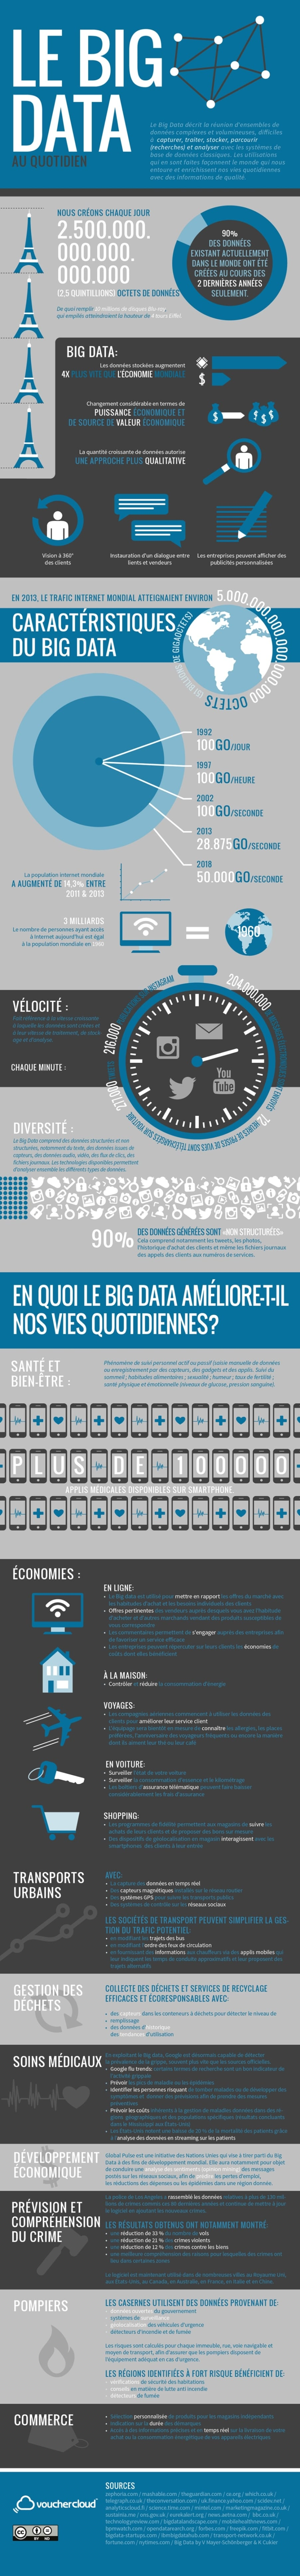 big-data-quotidien Infographie : le Big Data au quotidien